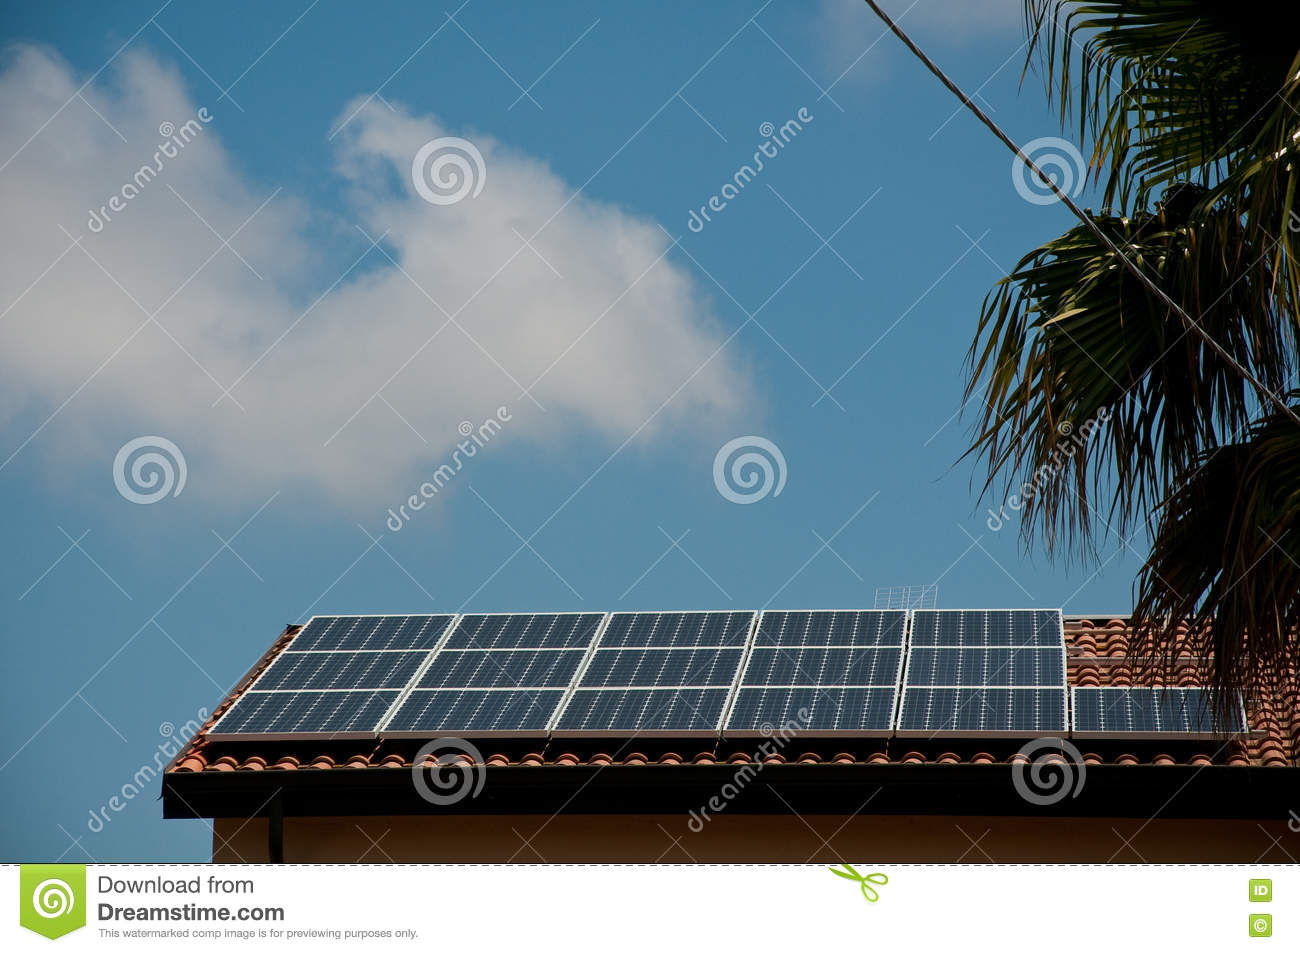 Roof Installed Solar Panels That Are Used To Make Electricity Stock How Does The Panel From Sunlight